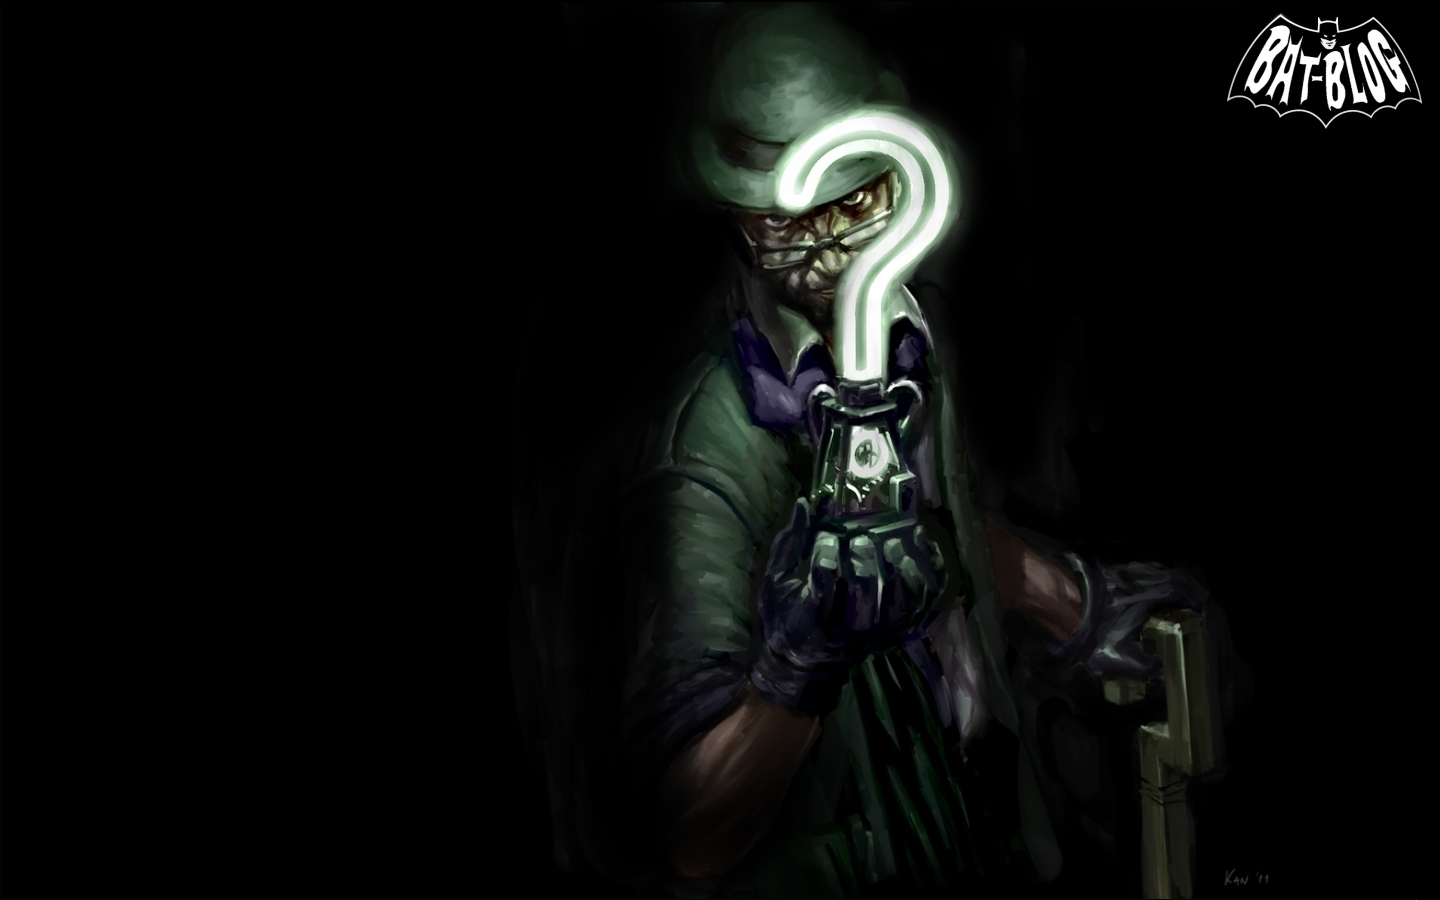 http://3.bp.blogspot.com/-6mBWv_Rp_pg/TYJdgRv9nOI/AAAAAAAAOvI/agfrUTDBsRA/s1600/riddler-wallpaper-batman-arkham-city-video-game-2.jpg